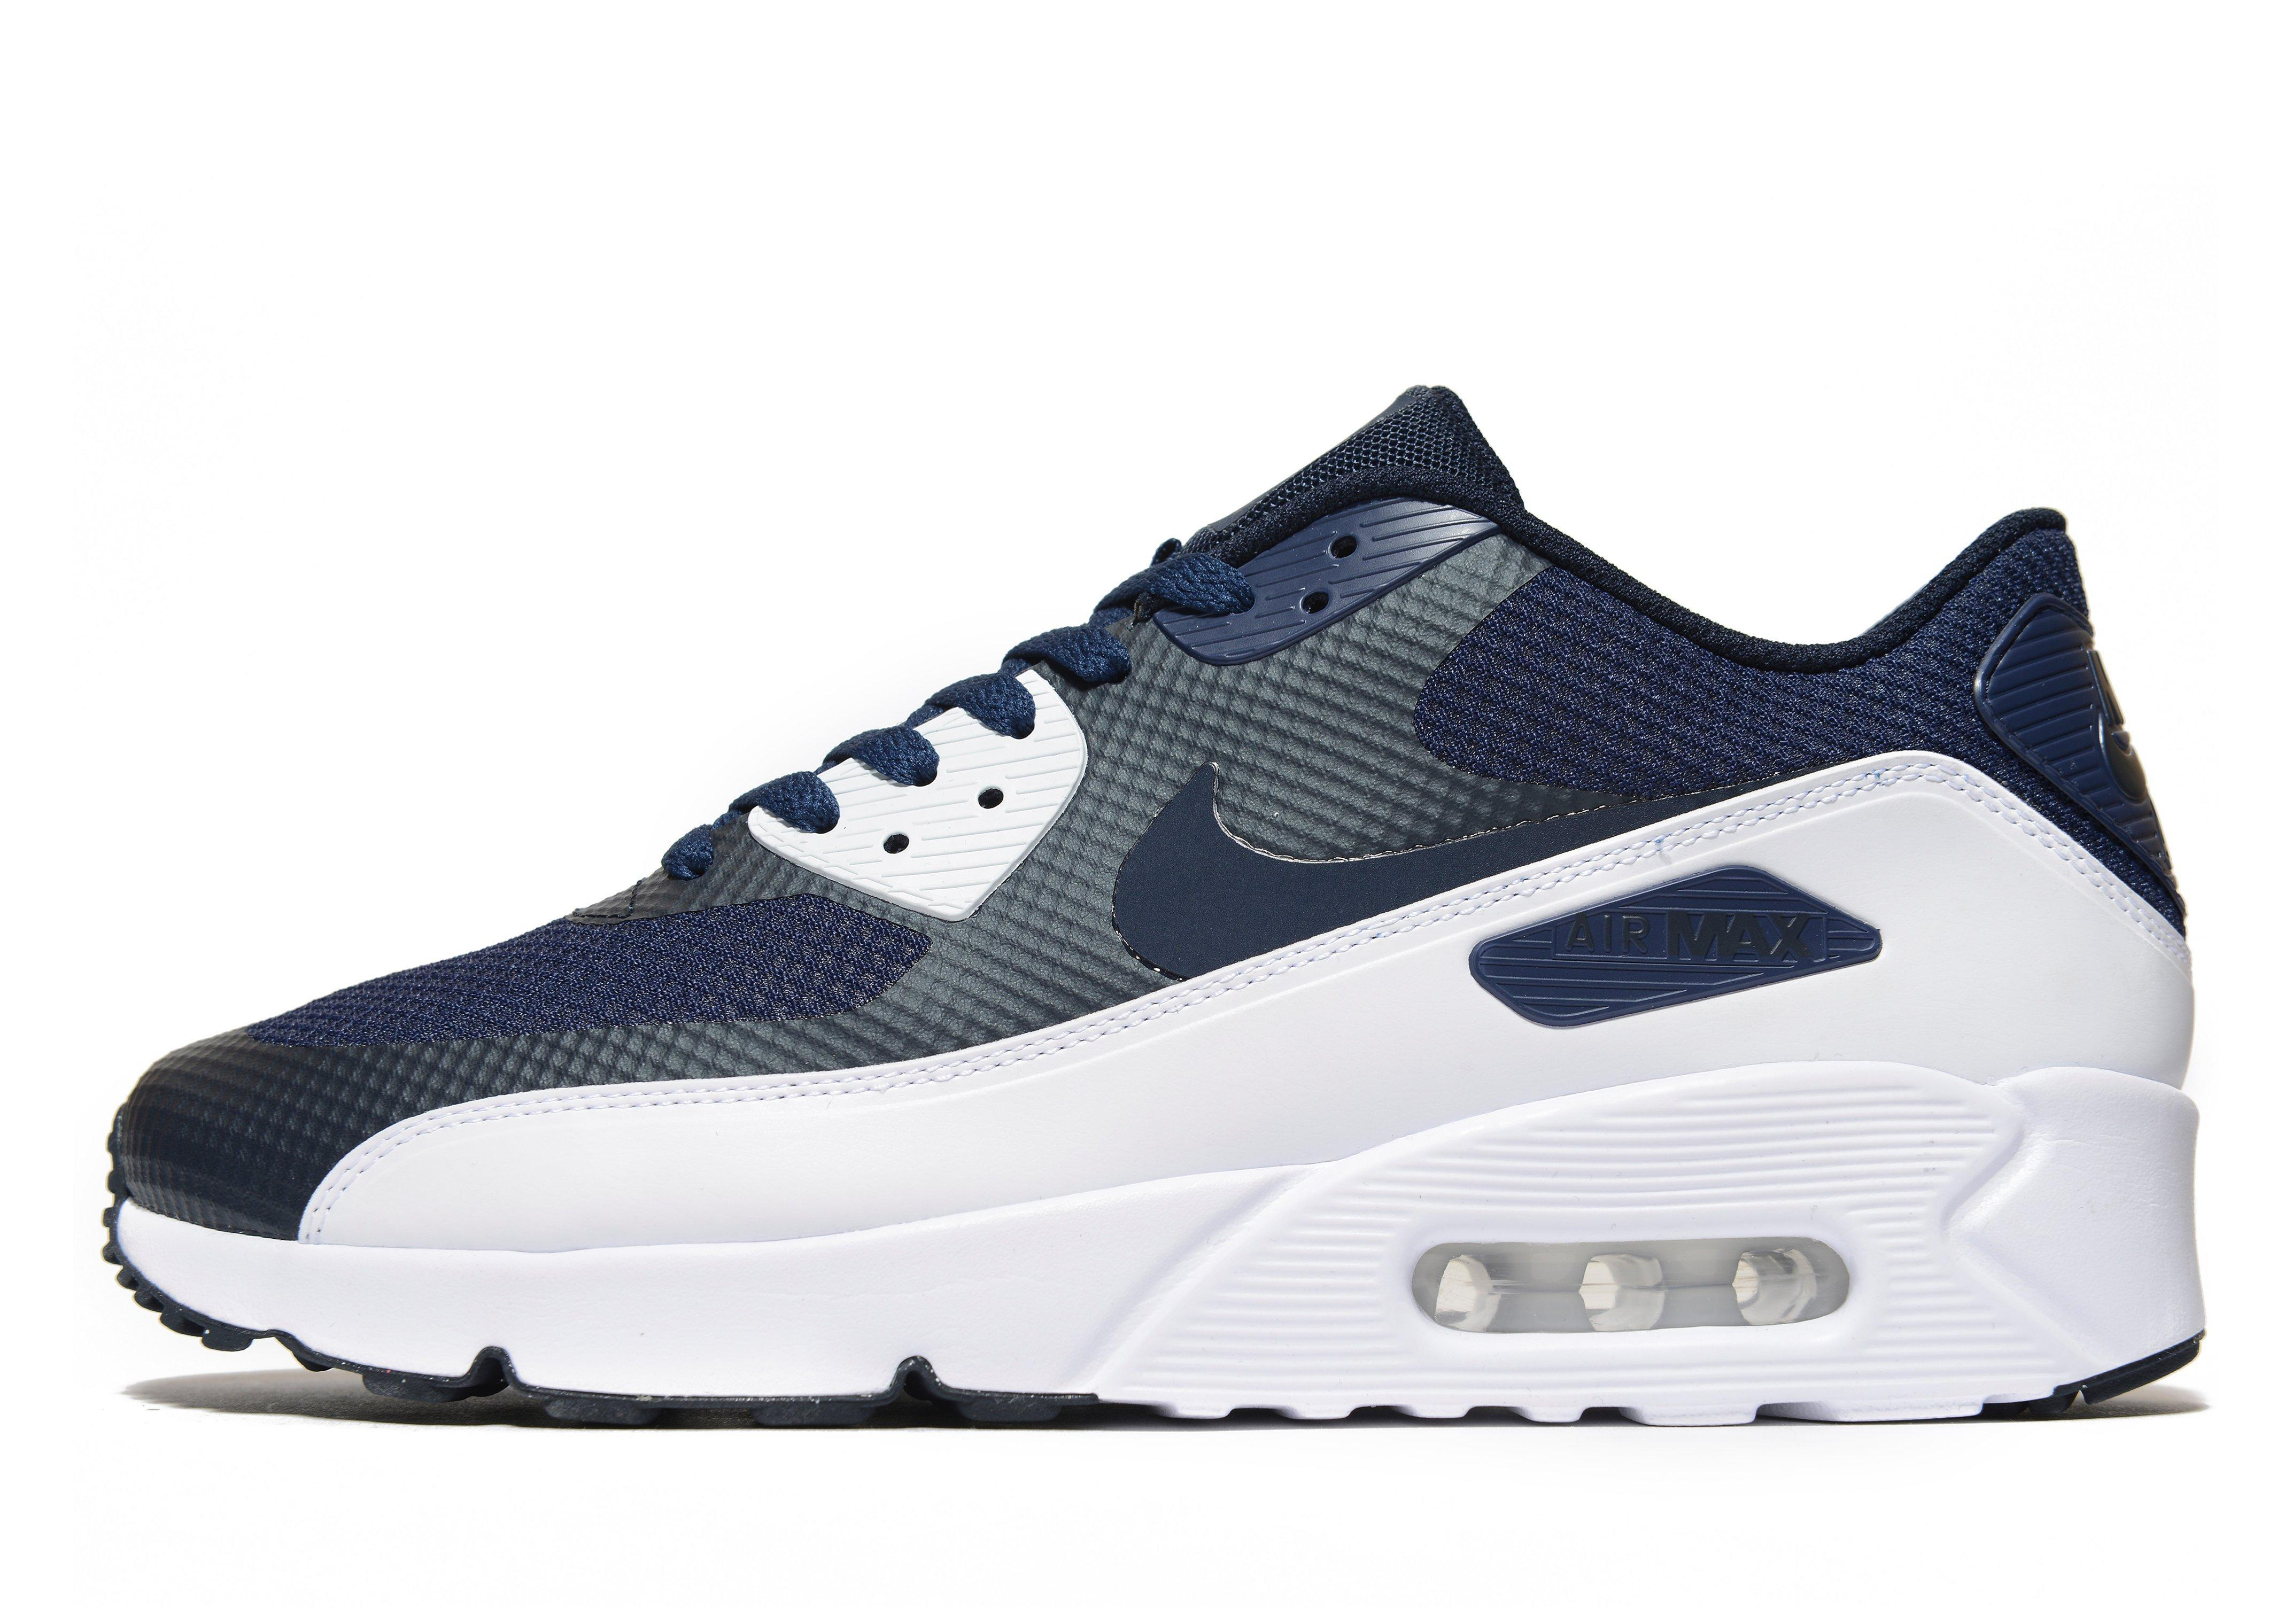 lyst nike air max 90 ultra essential 2 0 in blue for men. Black Bedroom Furniture Sets. Home Design Ideas